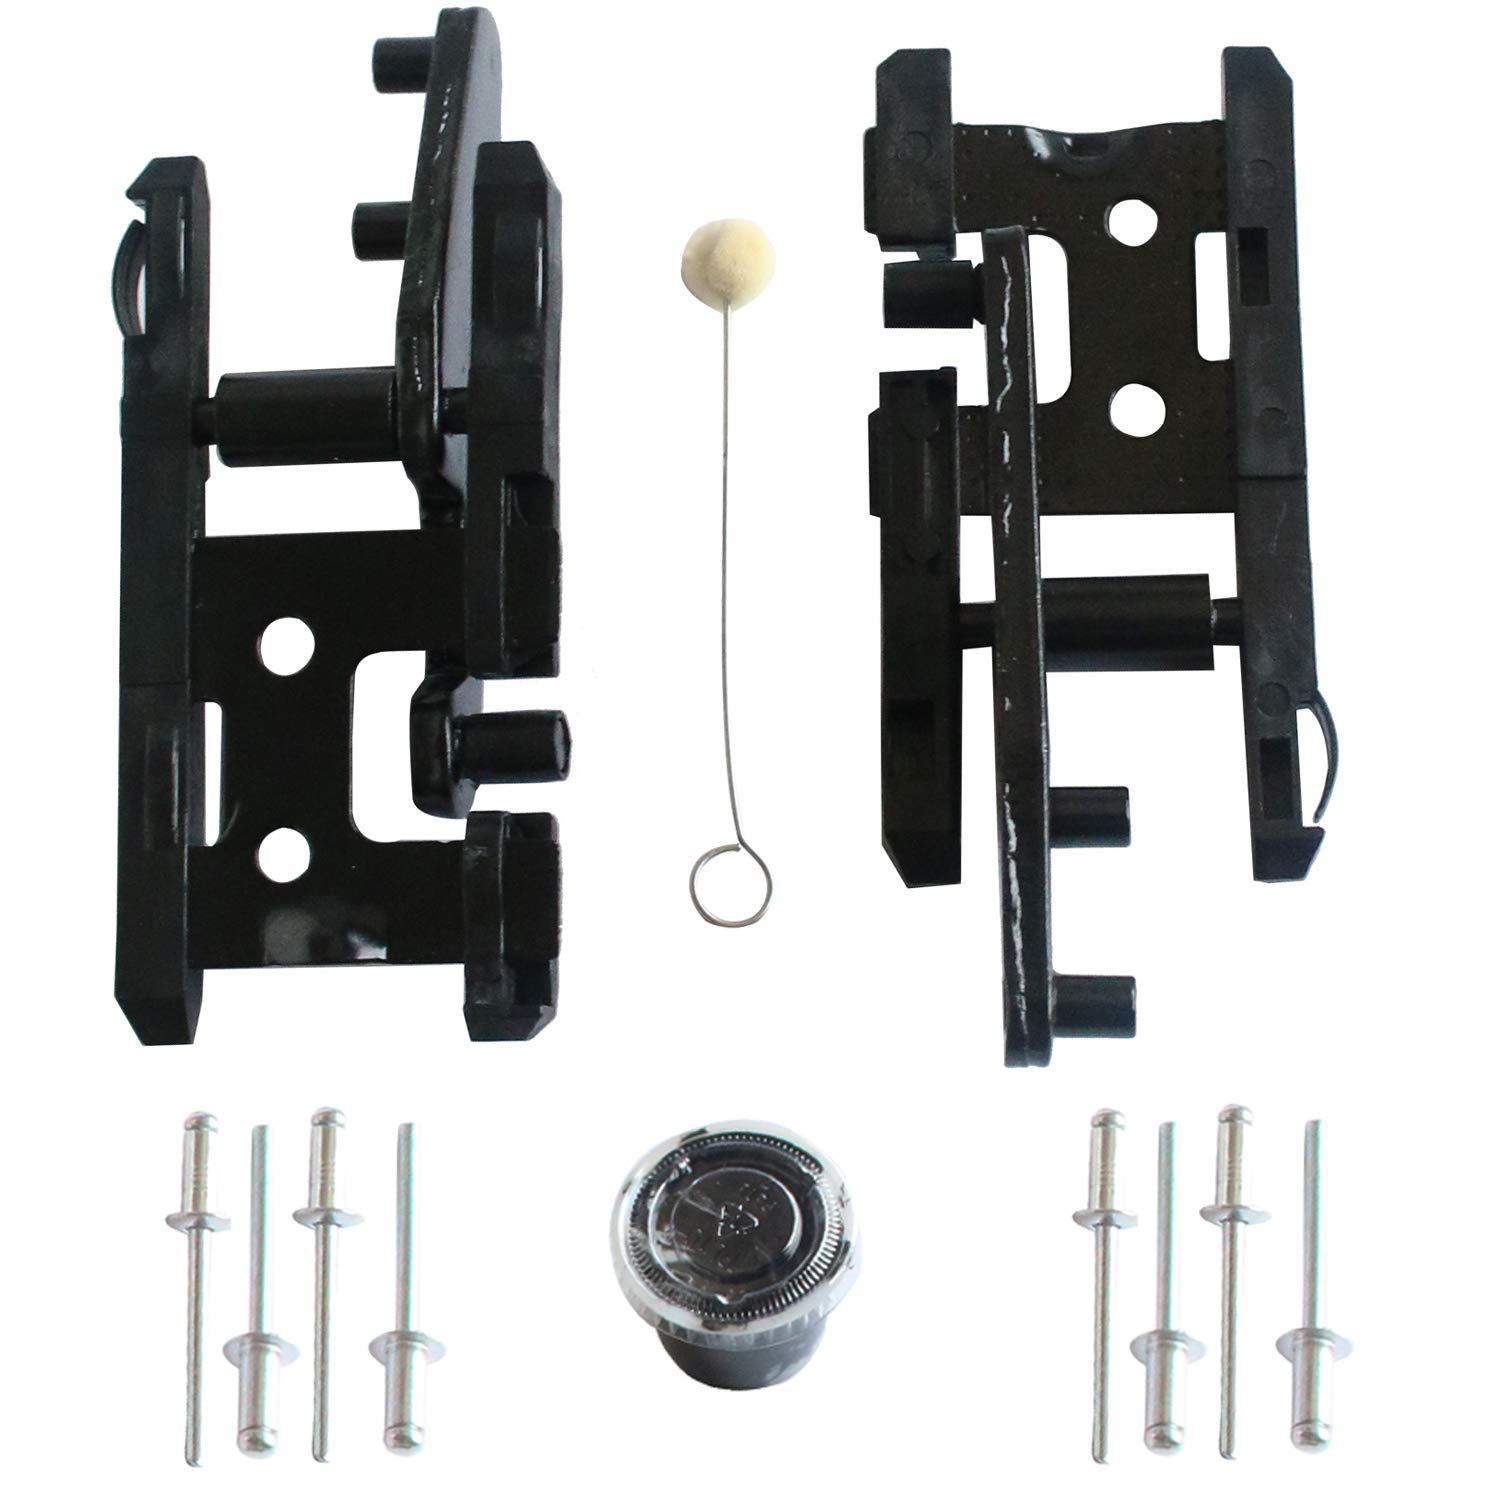 for Navigator 2000-2016 F250 F350 F450 2005-2016 for Lincoln Mark LT 20006-2008 LIYA Sunroof Track Assembly Repair Kit Fits Ford F150 2000-2014